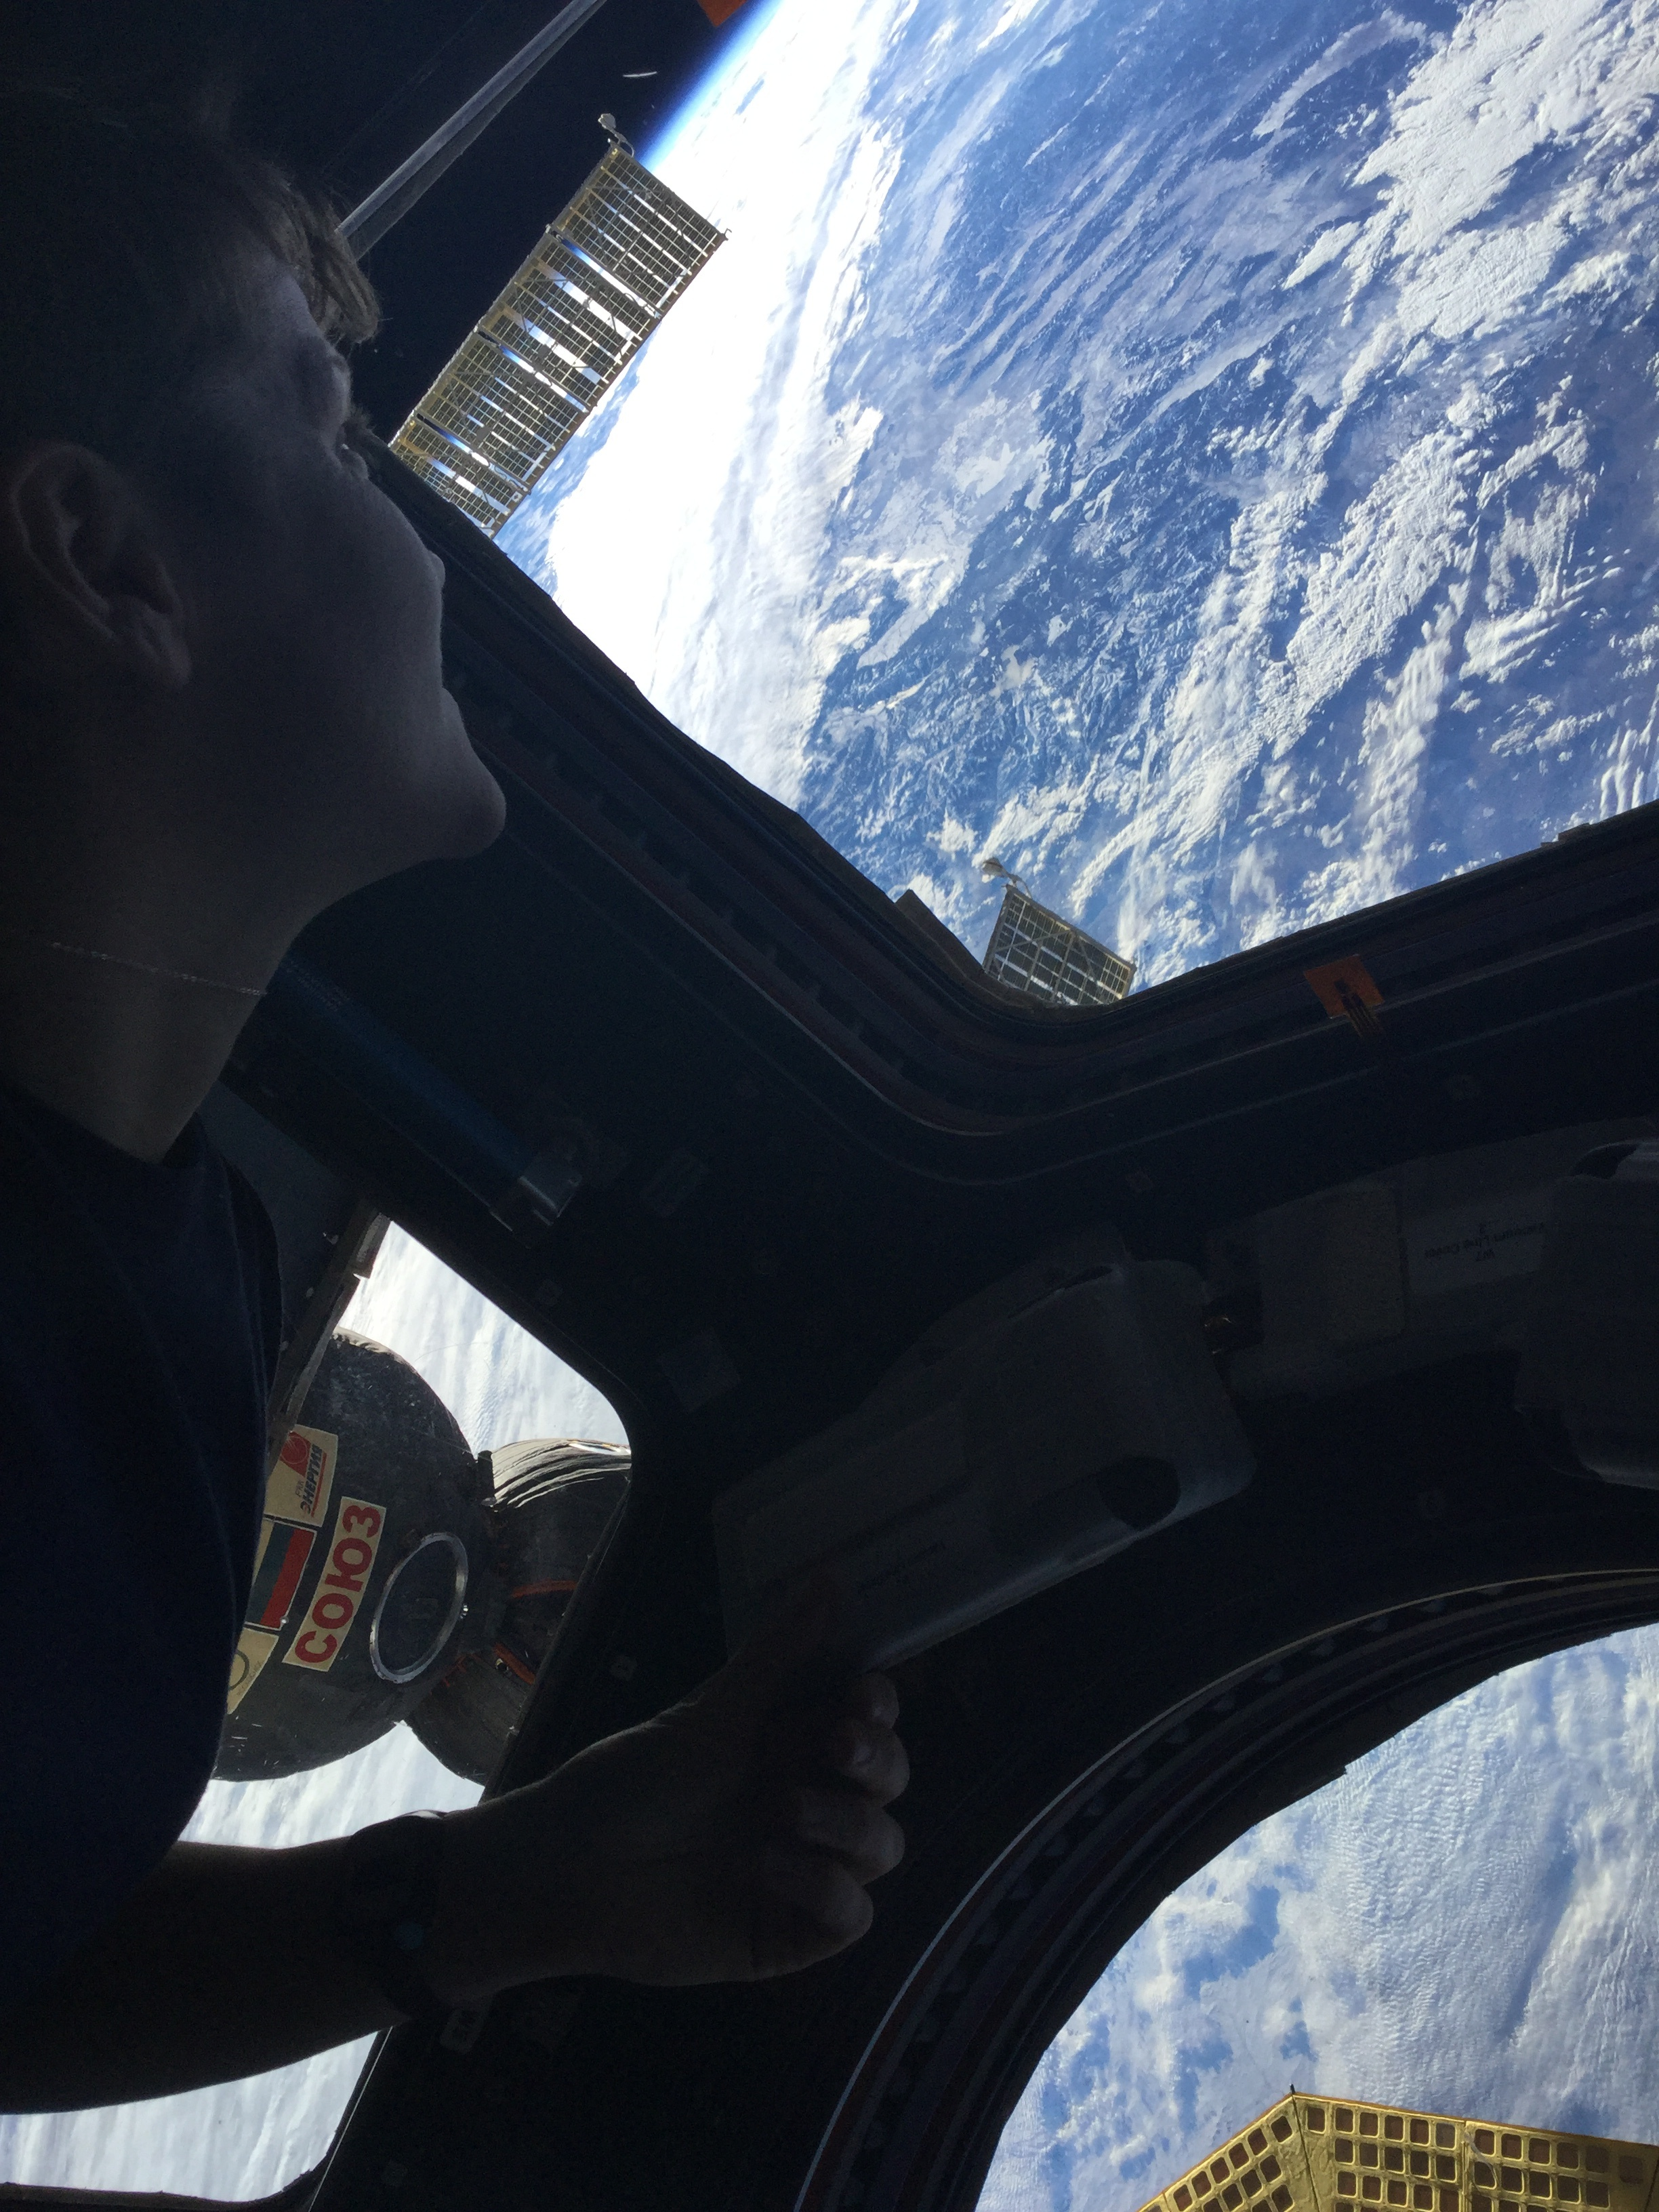 Astronaut Anne McClains First Voyage to the Space Station